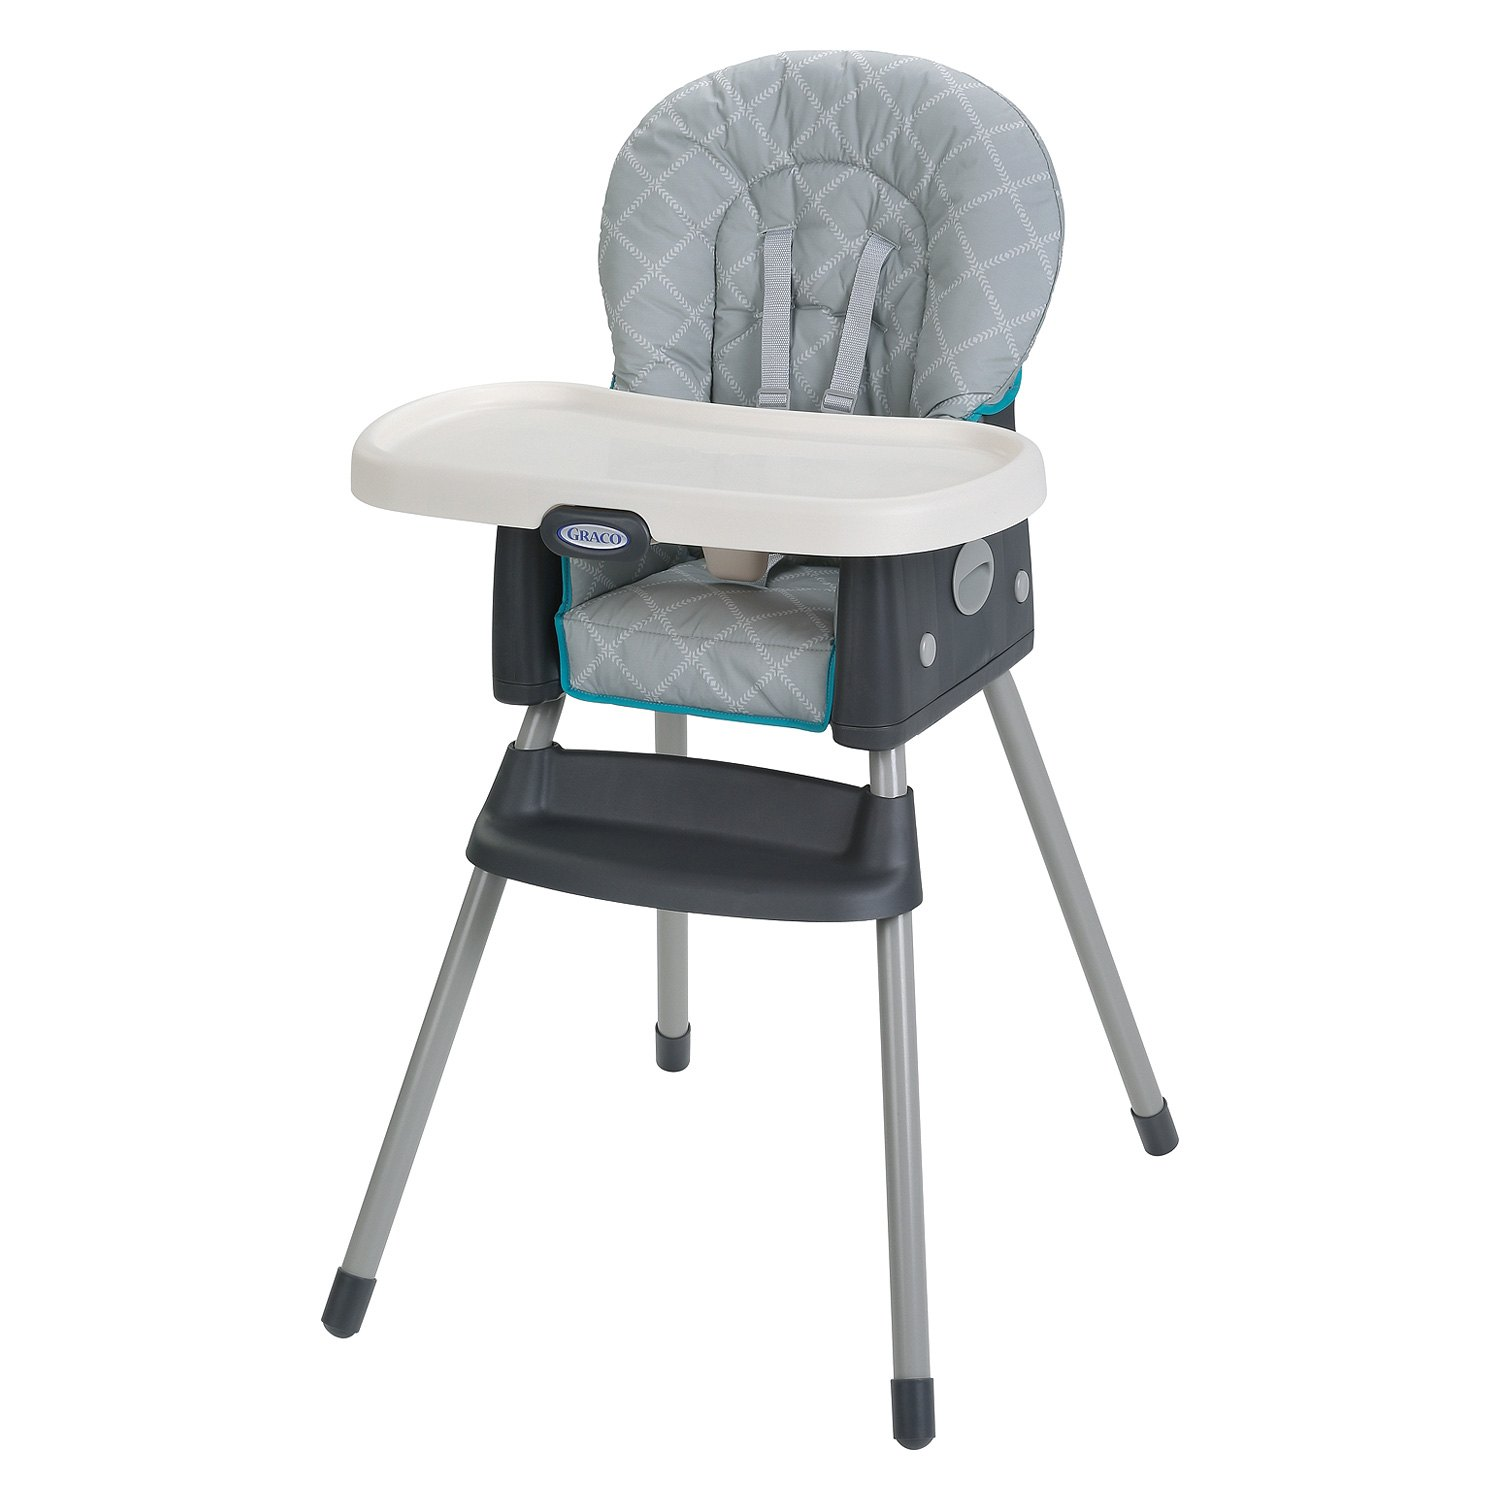 graco baby 174 simpleswitch highchair